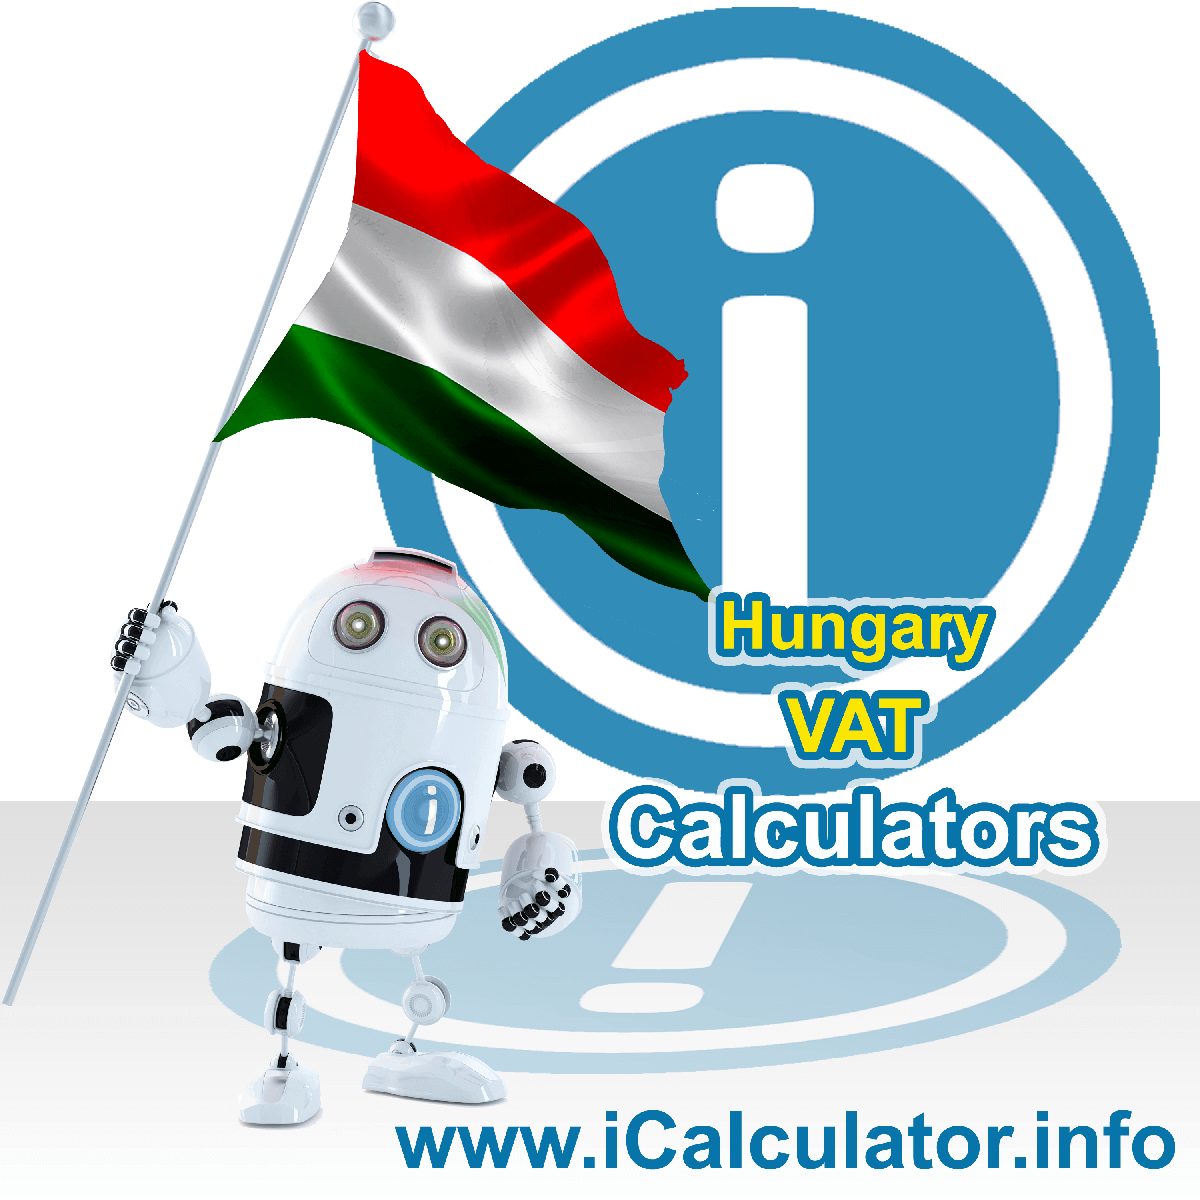 Hungary VAT Calculator. This image shows the Hungary flag and information relating to the VAT formula used for calculating Value Added Tax in Hungary using the Hungary VAT Calculator in 2021